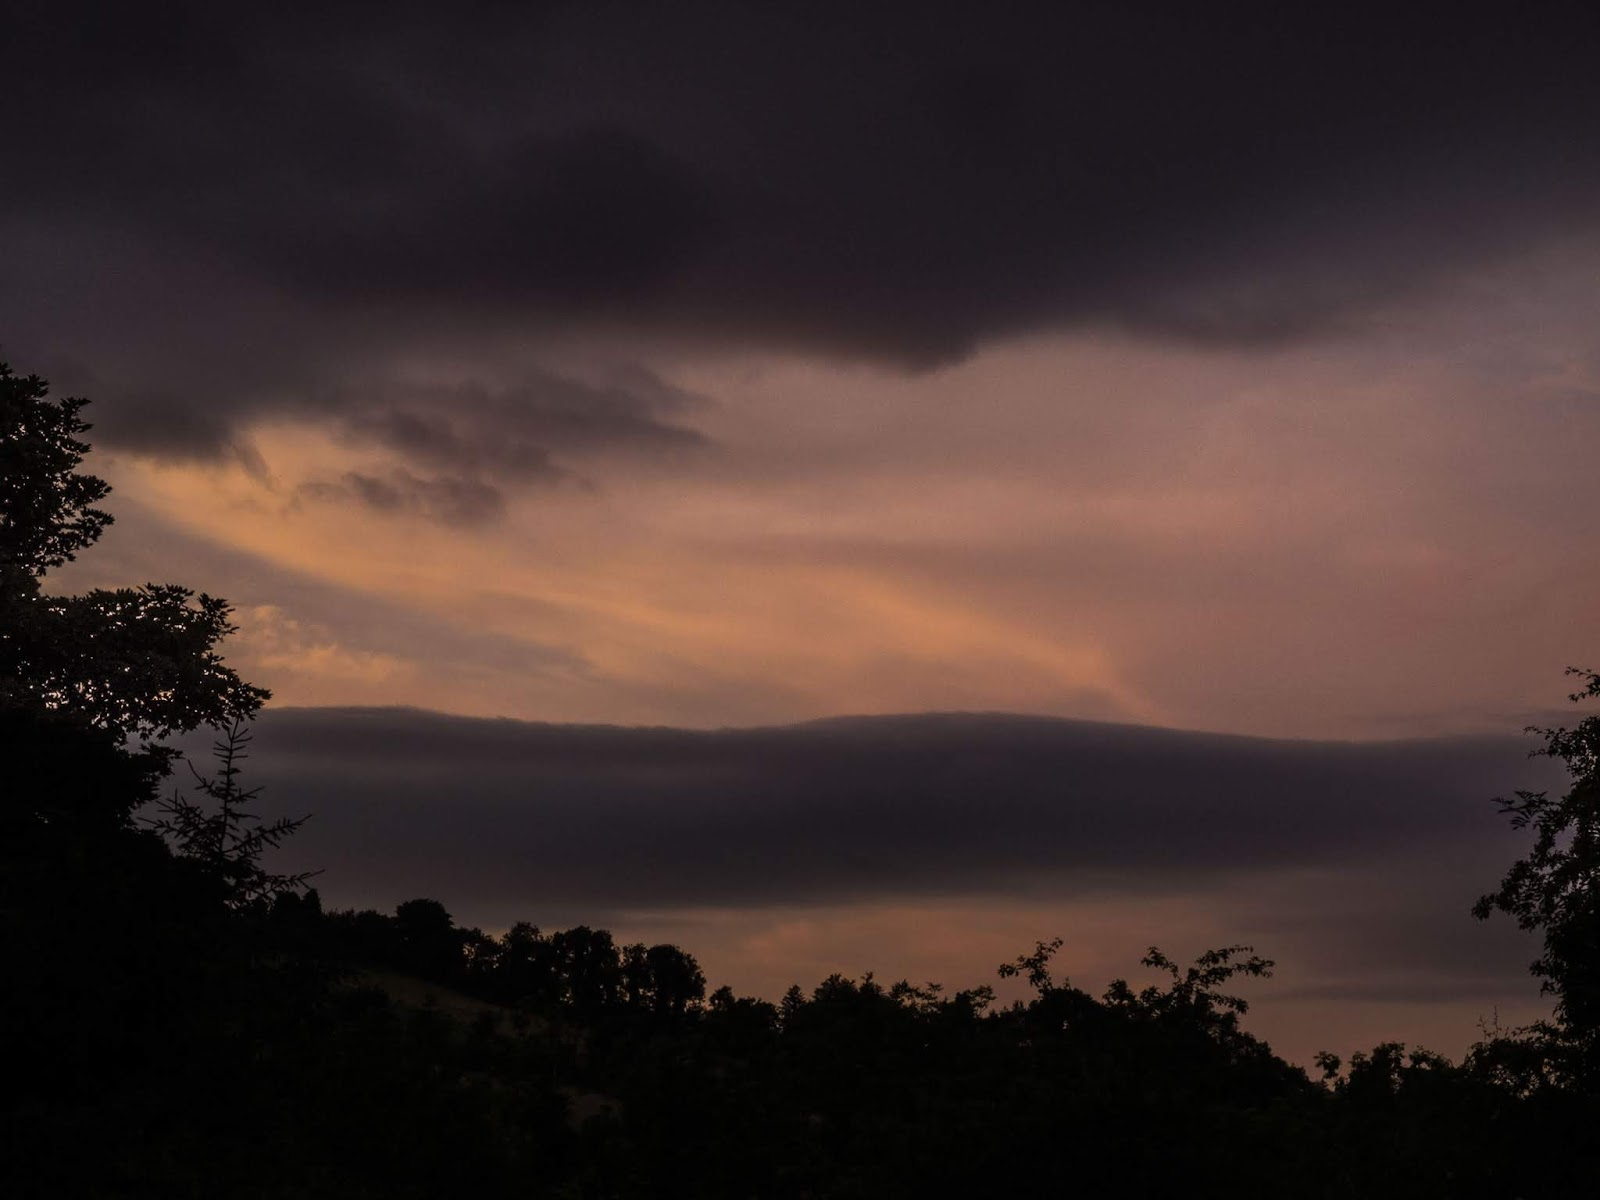 A dark pastel toned sunset sky over the trees in the Boggeragh Mountains, Co.Cork.